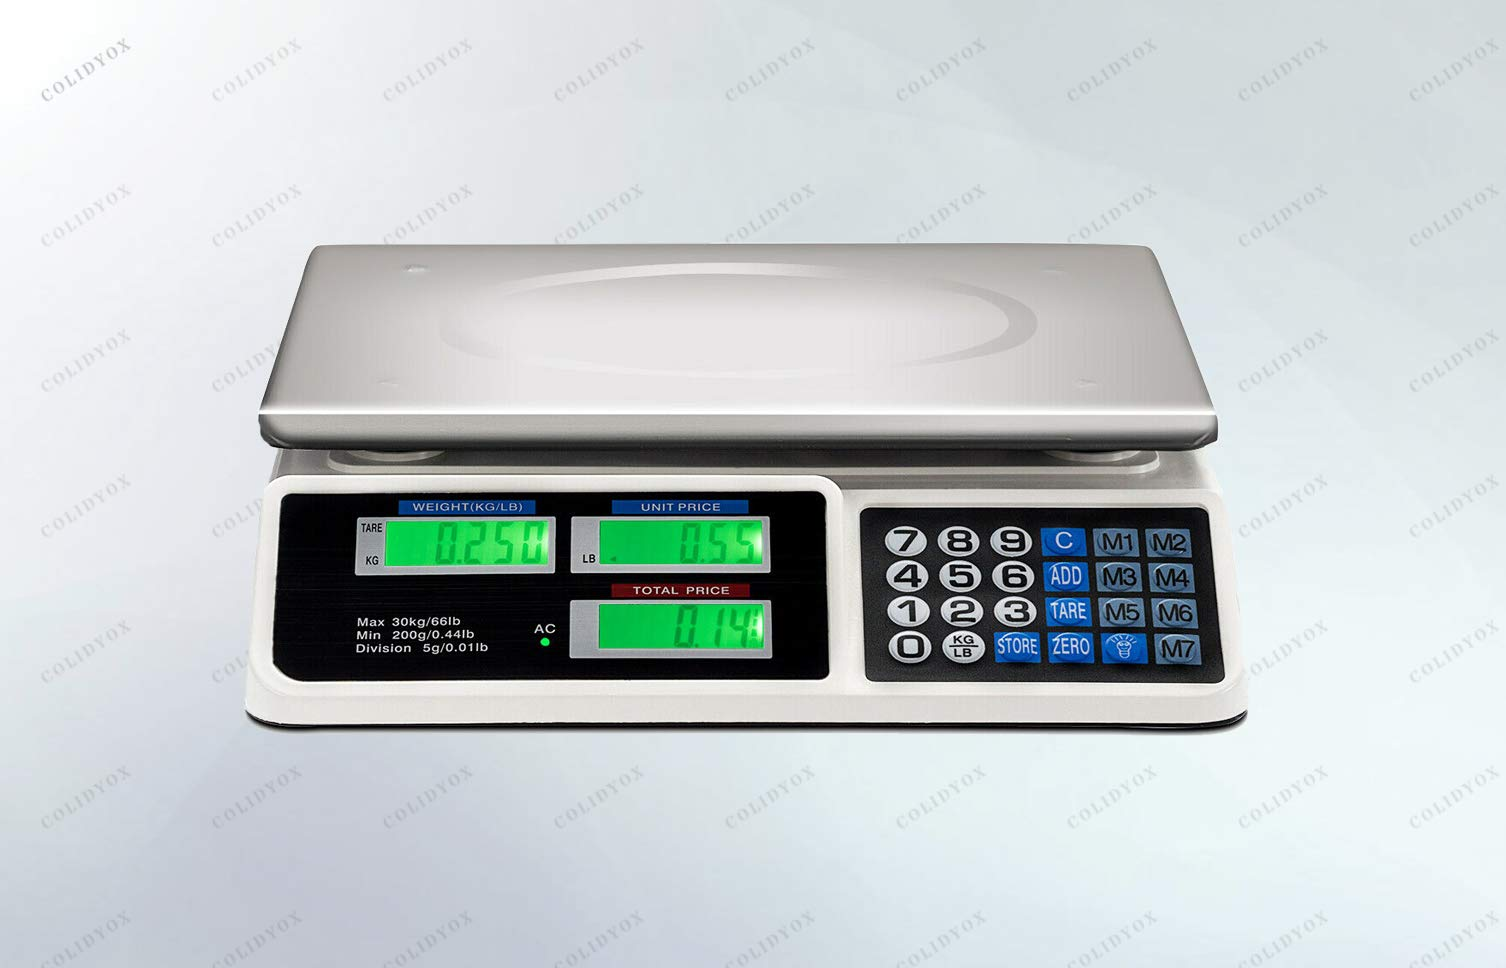 COLIDYOX>>>66Lbs Digital Weight Scale Price Computing Retail This Digital Scale is a Great Choice for You, Suitable for Super Markets, Grocery Stores, Kitchens, Restaurants and Other Retail outlets.